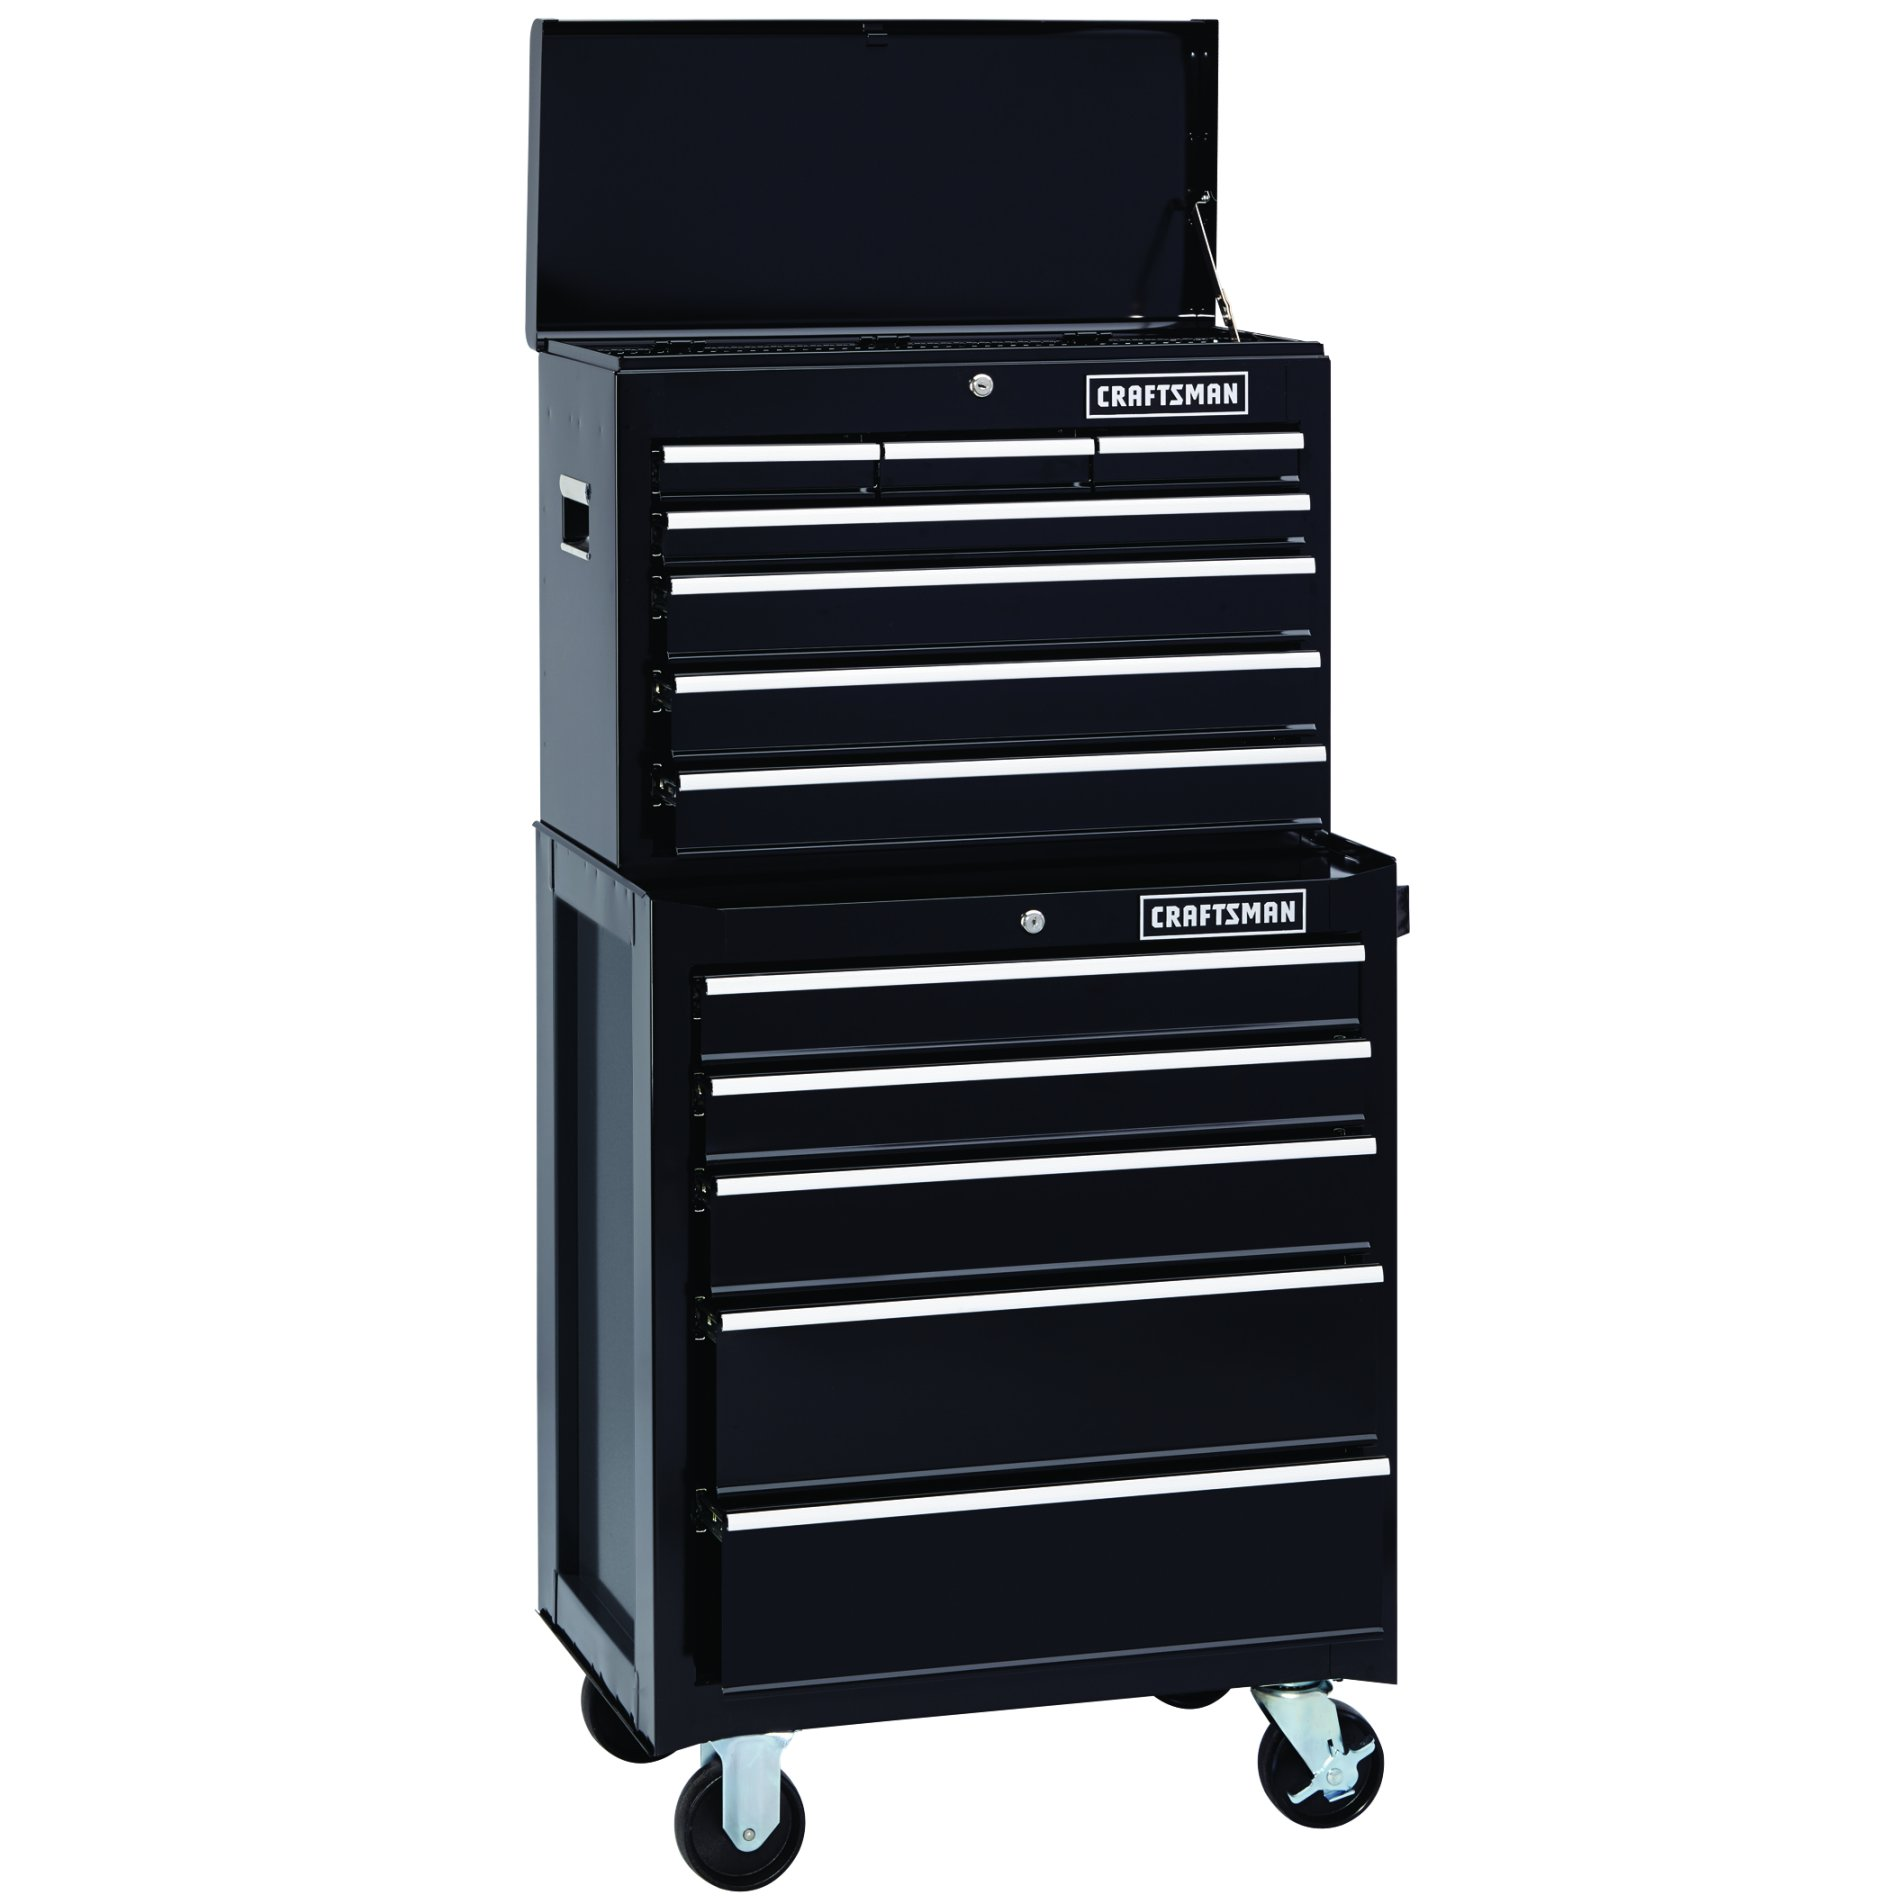 Craftsman 12-Drawer Heavy-Duty Ball Bearing Combo - Black